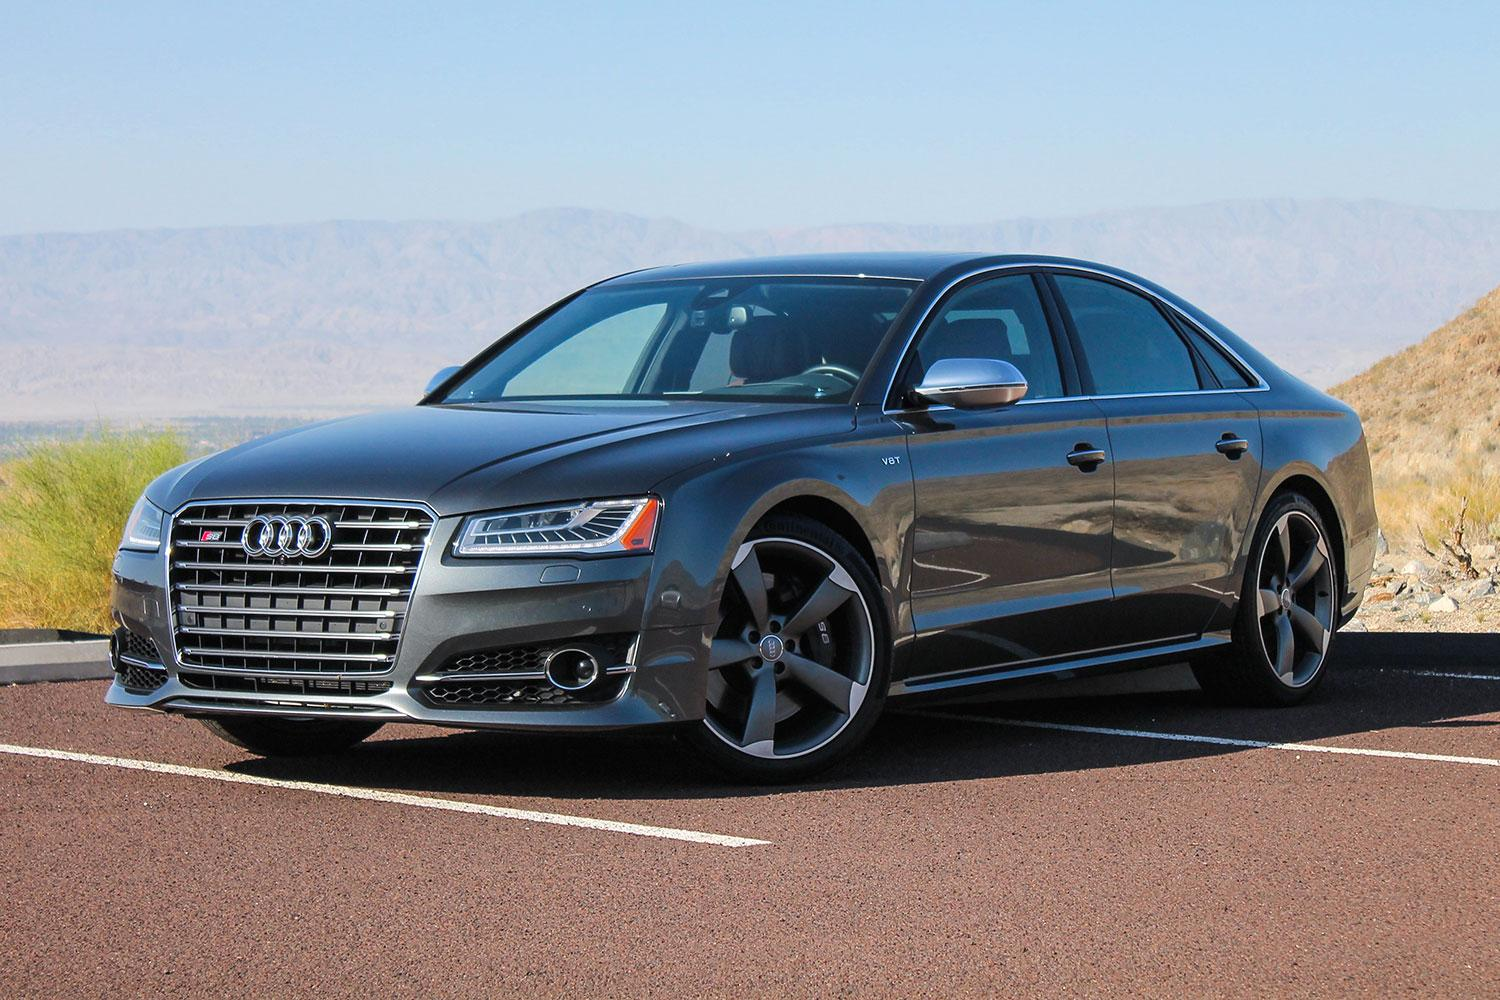 Audi S8 W12 Turbo >> Introducing Digital Trends Car of the Year awards | Digital Trends